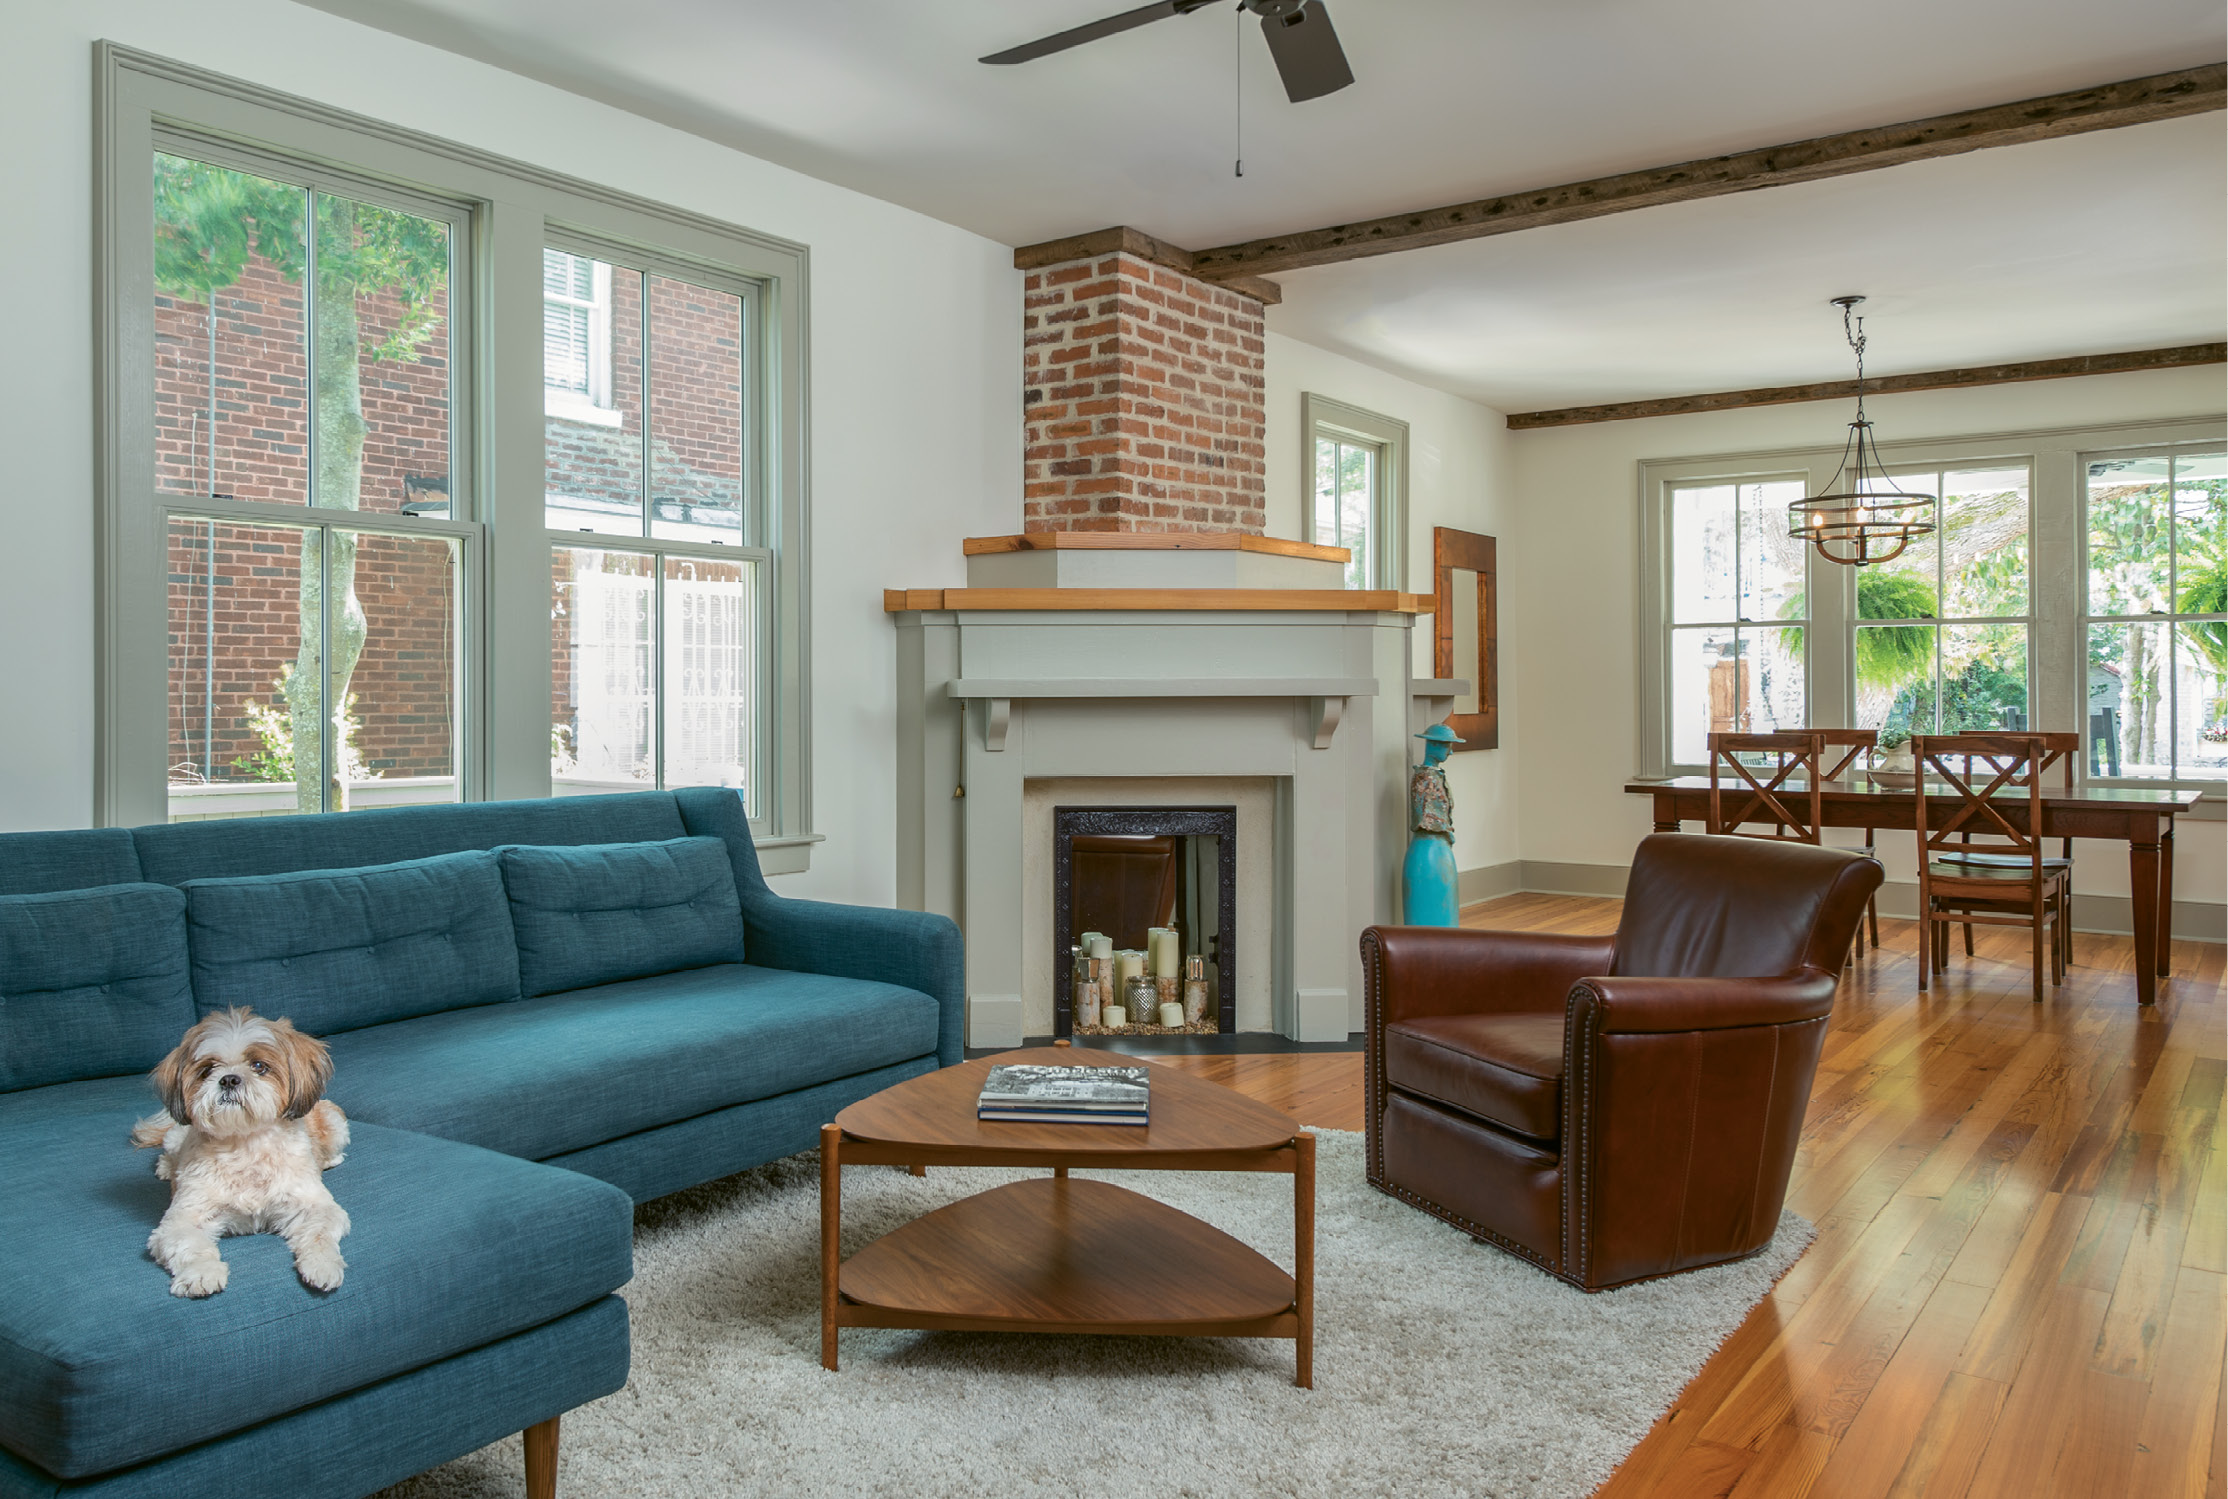 Opening Up: When an original wall separating the dining and living rooms proved unsalvable, Cindy and David took the opportunity to create a more open floor plan.